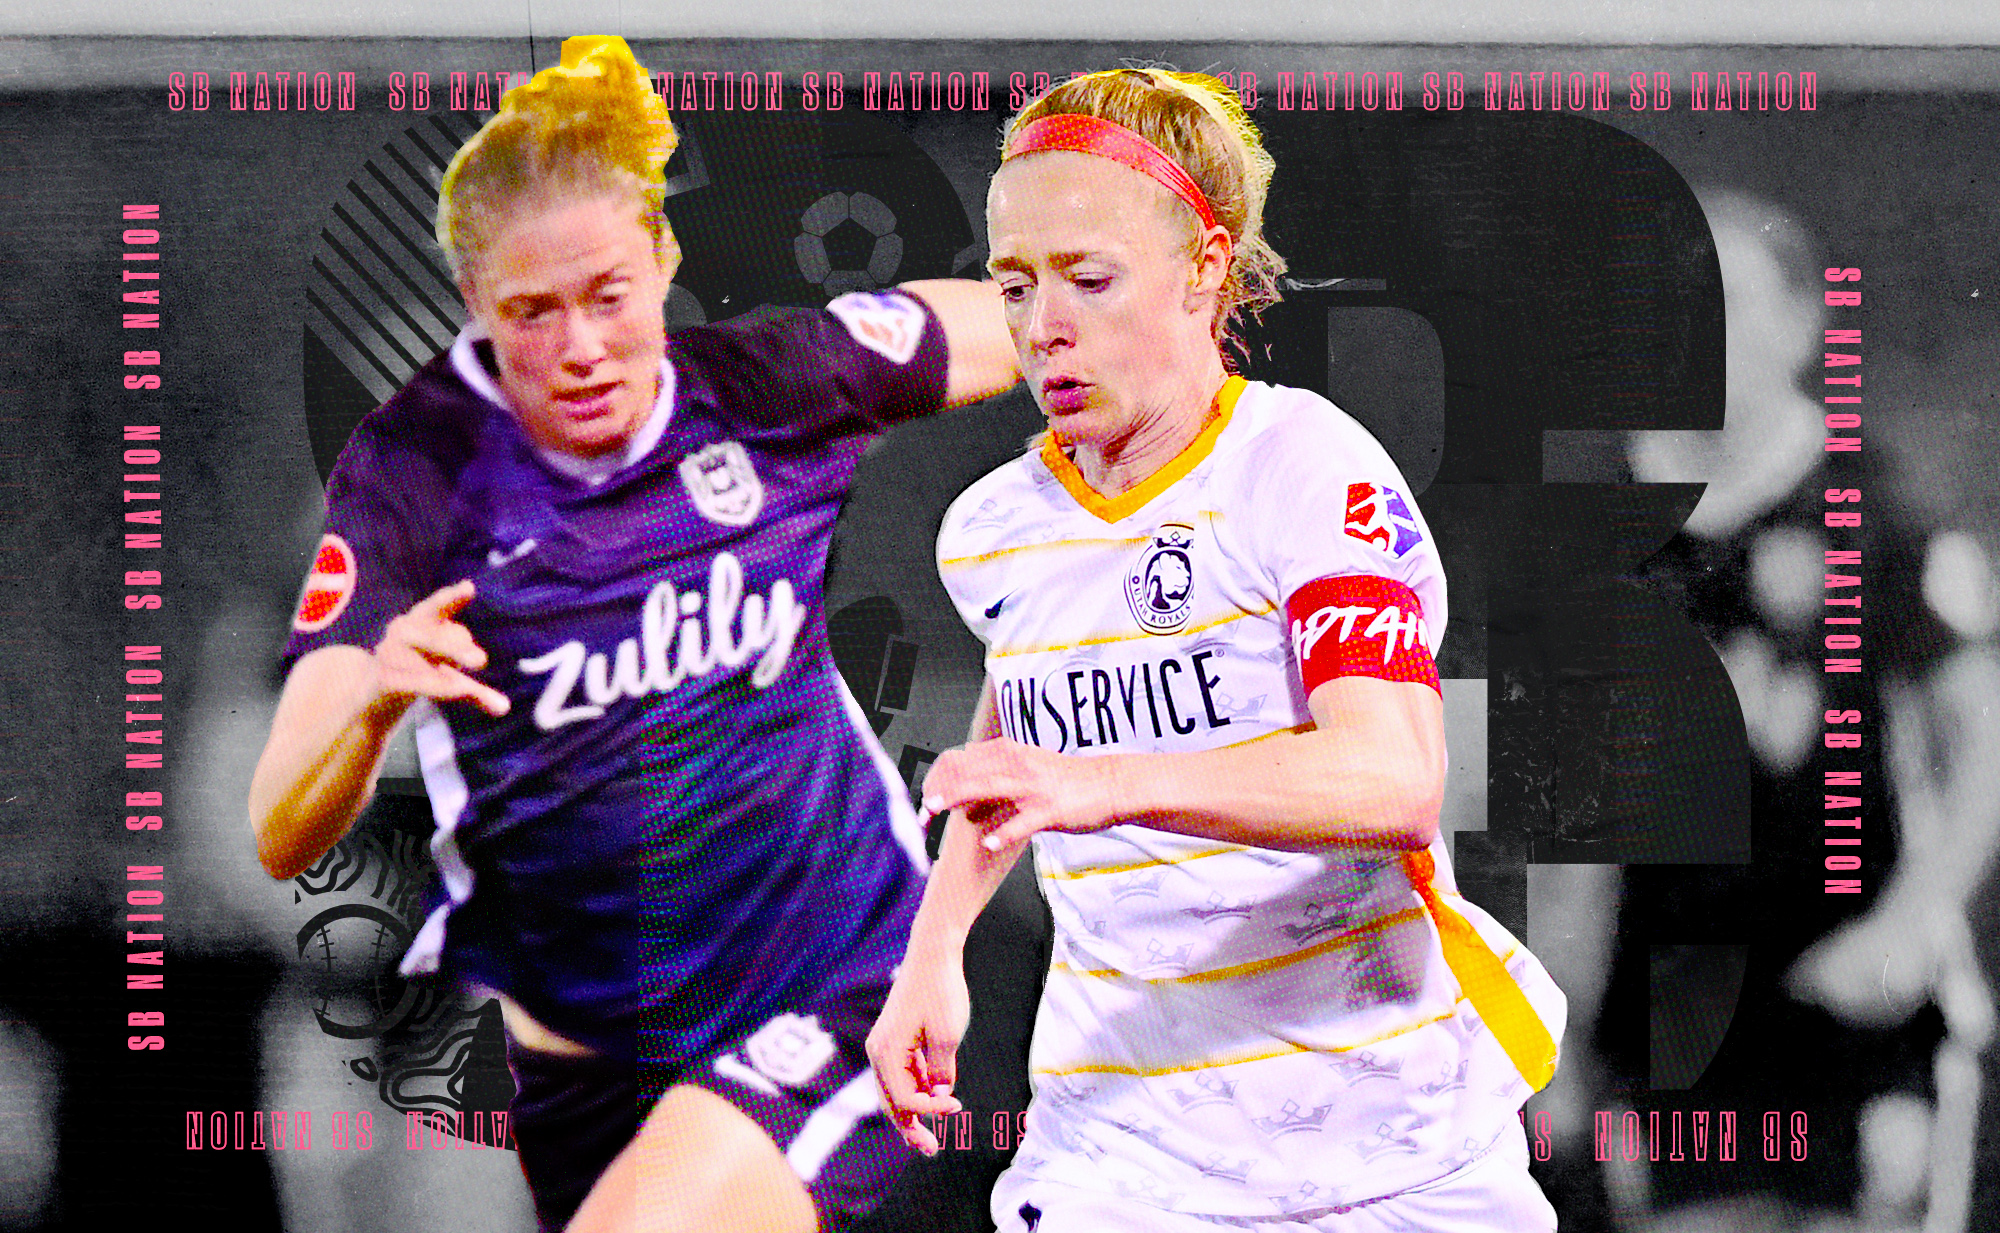 Becky Sauerbrunn dribbling past an opponent while playing for the Utah Royals.